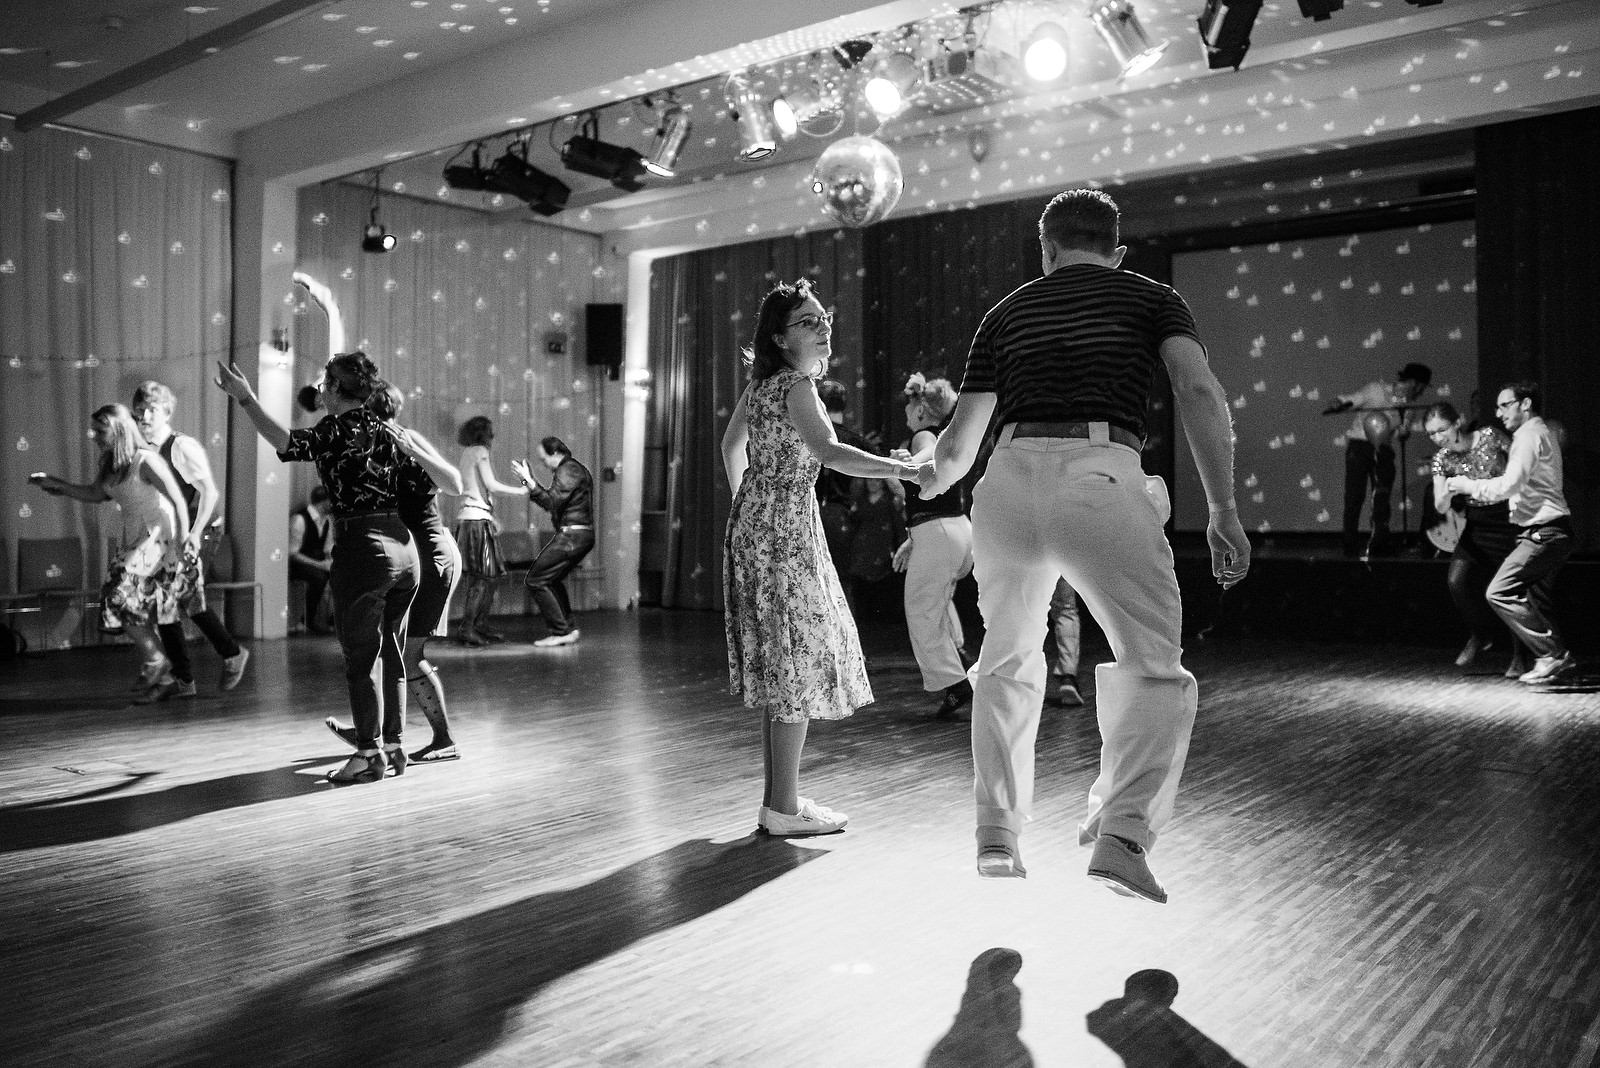 Fotograf Konstanz - Lindy Hop Swing Silvester Party Fotograf Konstanz EFP 22 - Lindy-Hop Swing New Year's Eve Party  - 23 -